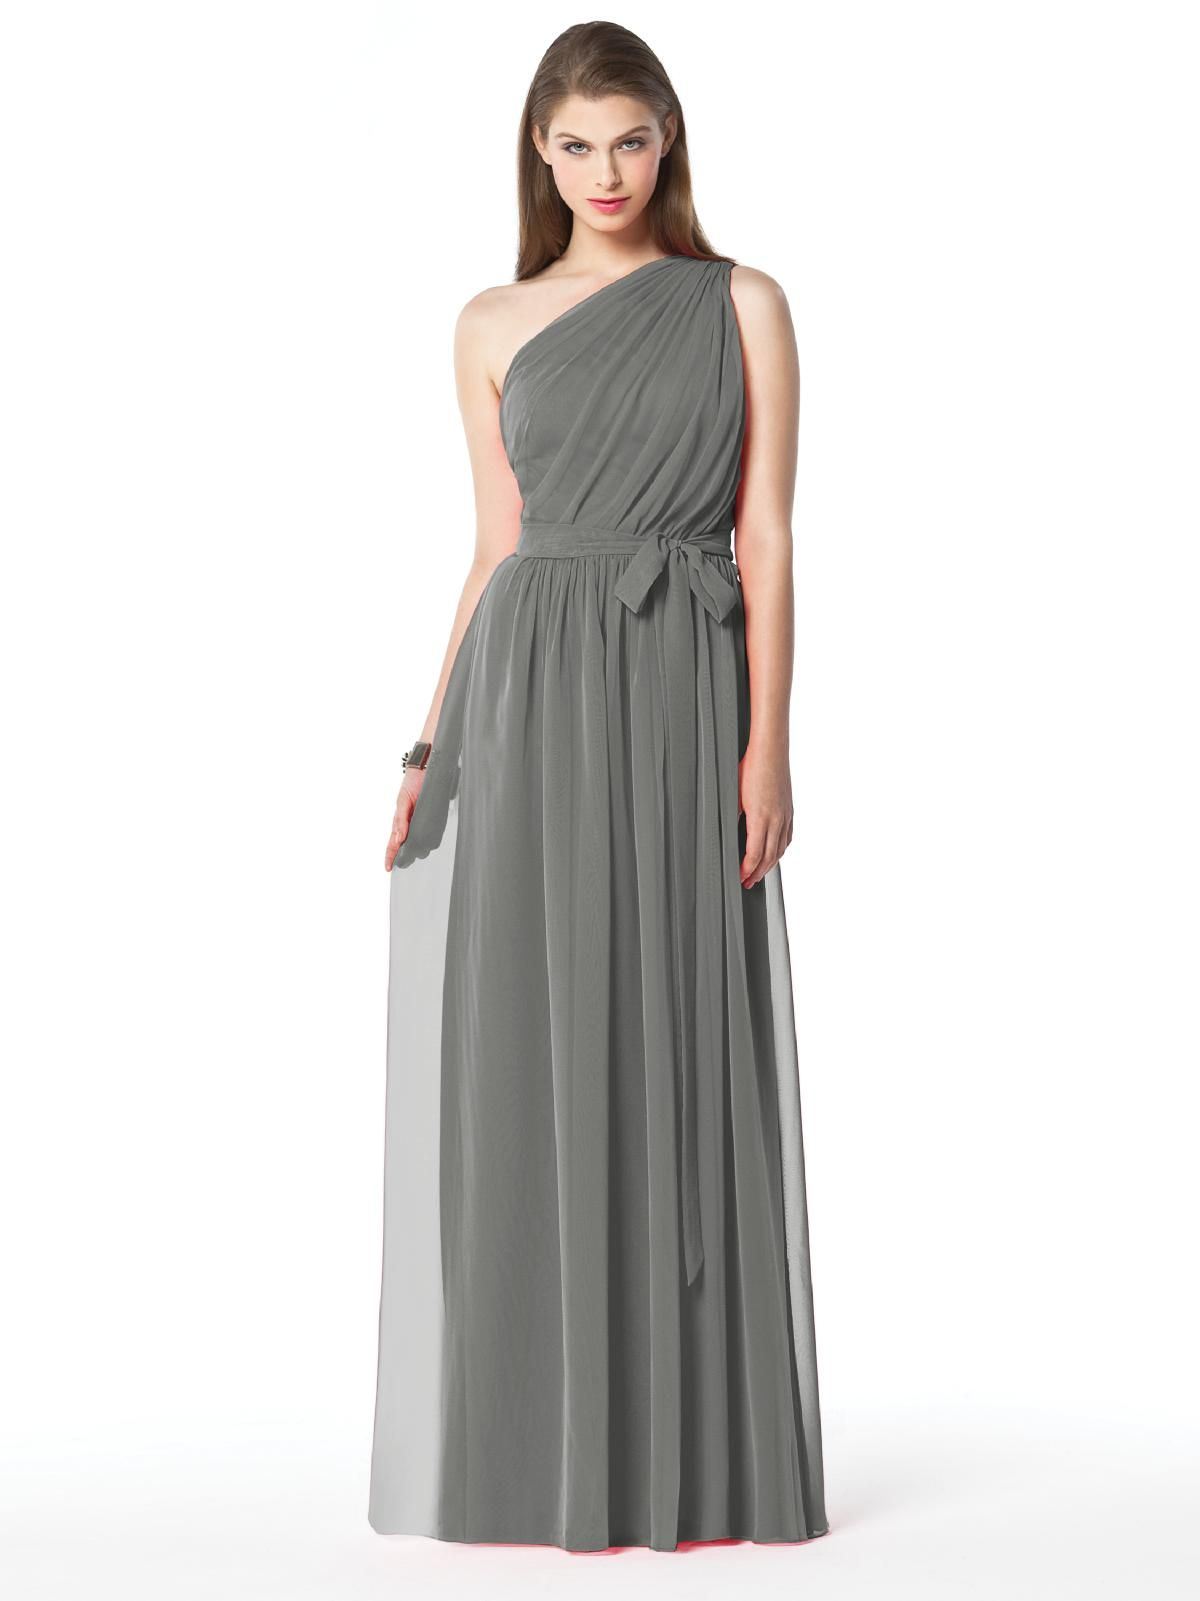 Dessy collection style 2831 in charcoal gray powell mckeen a line one shoulder floor length chiffon wedding party bridesmaid dresses ombrellifo Image collections